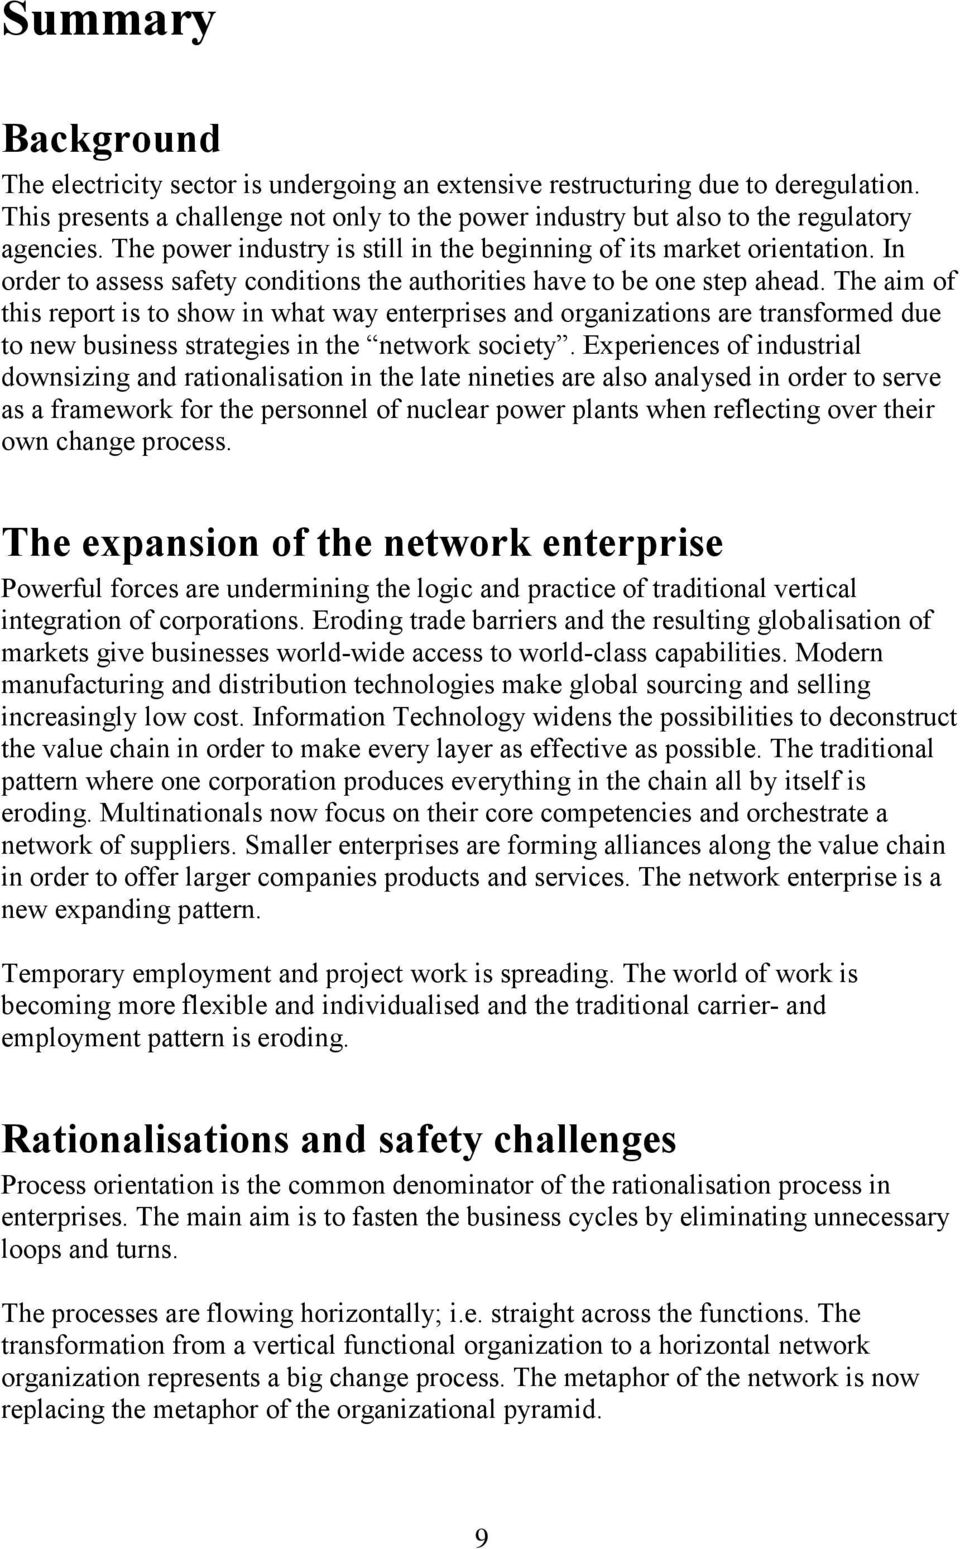 The aim of this report is to show in what way enterprises and organizations are transformed due to new business strategies in the network society.